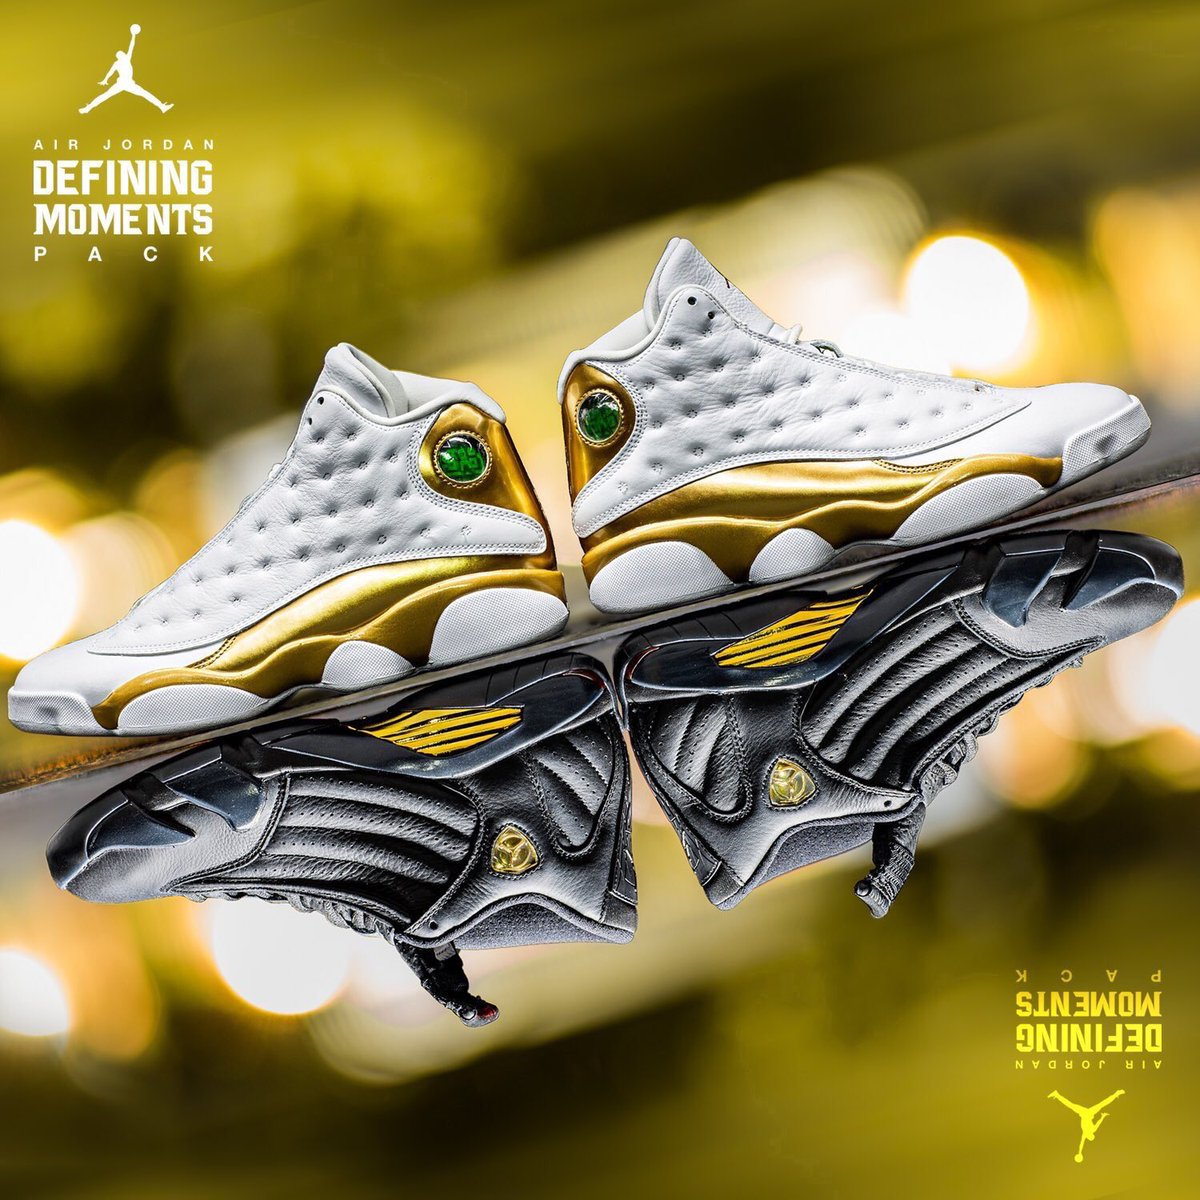 best service 6c794 07c8a air jordan retro 13 14 defining moments pack in men s and gs available now  free